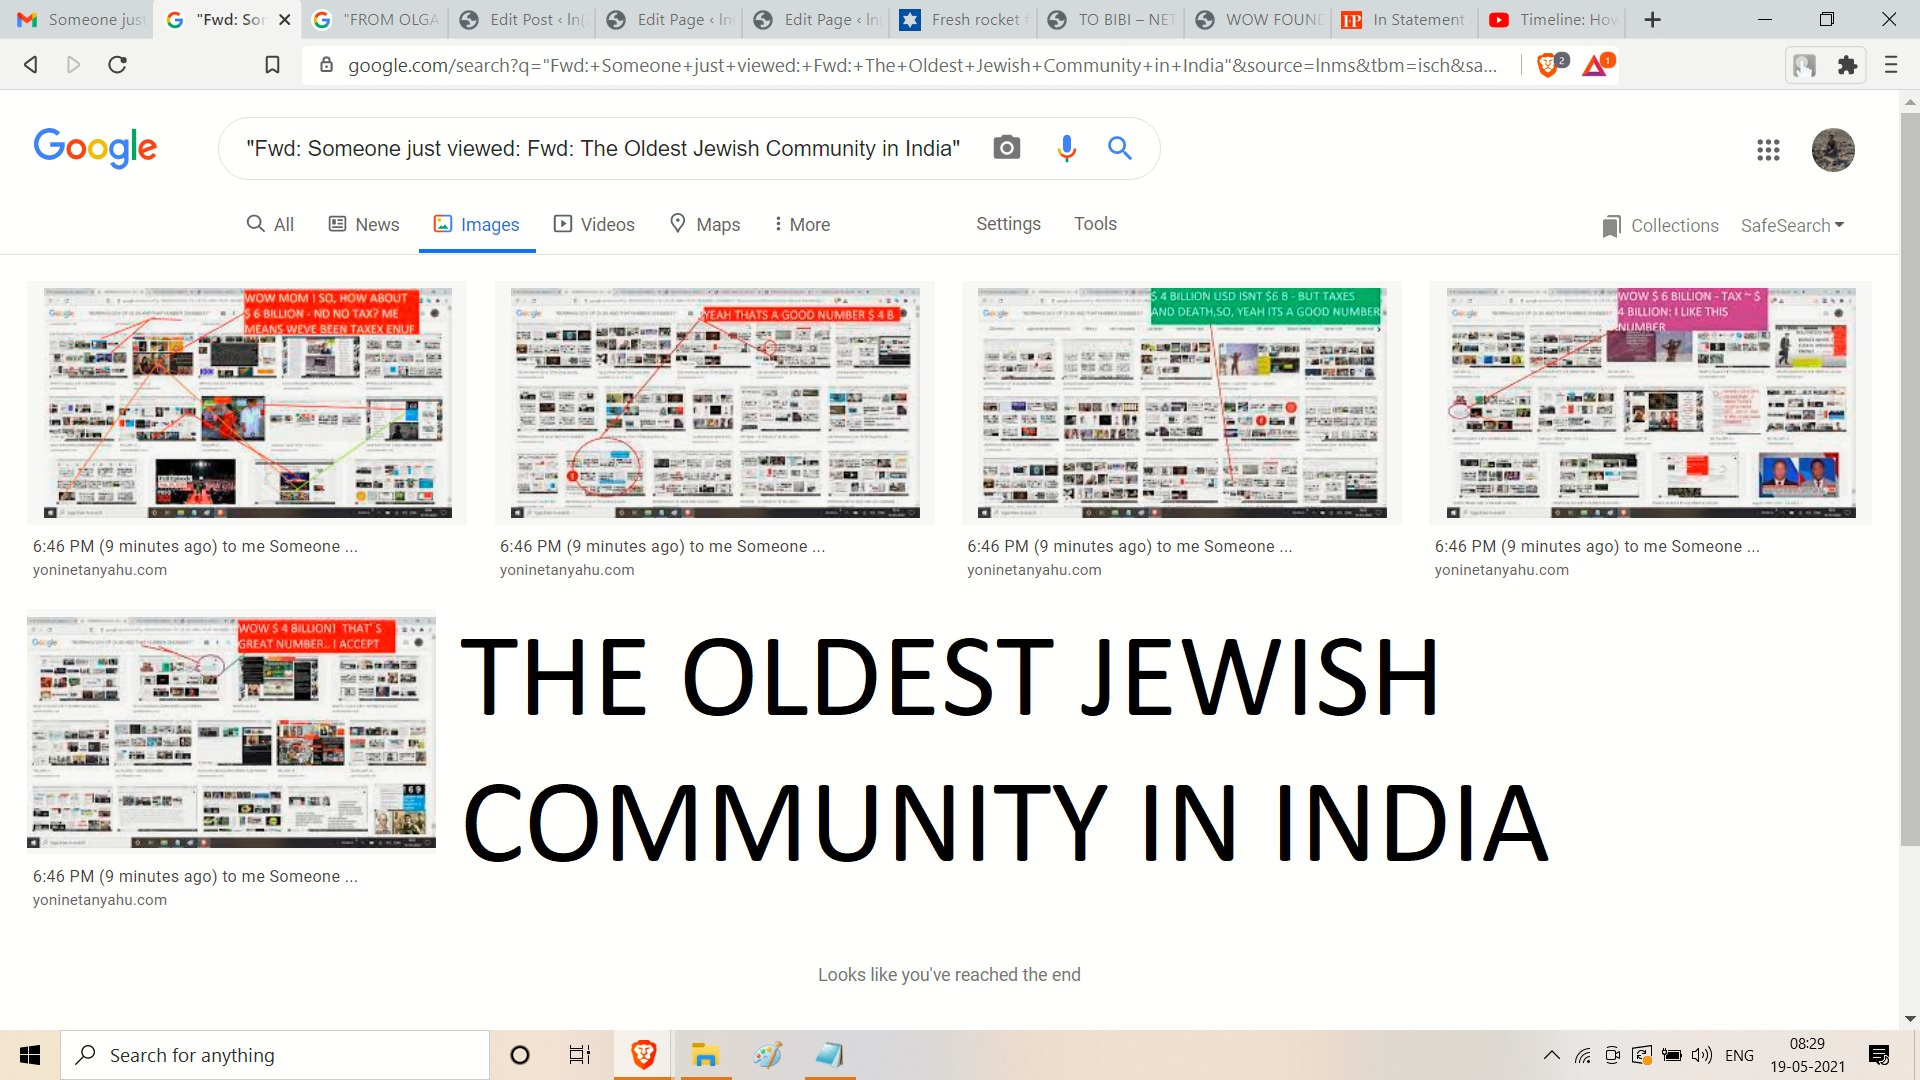 THE OLDEST JEWISH COMMUNITY IN INDIA